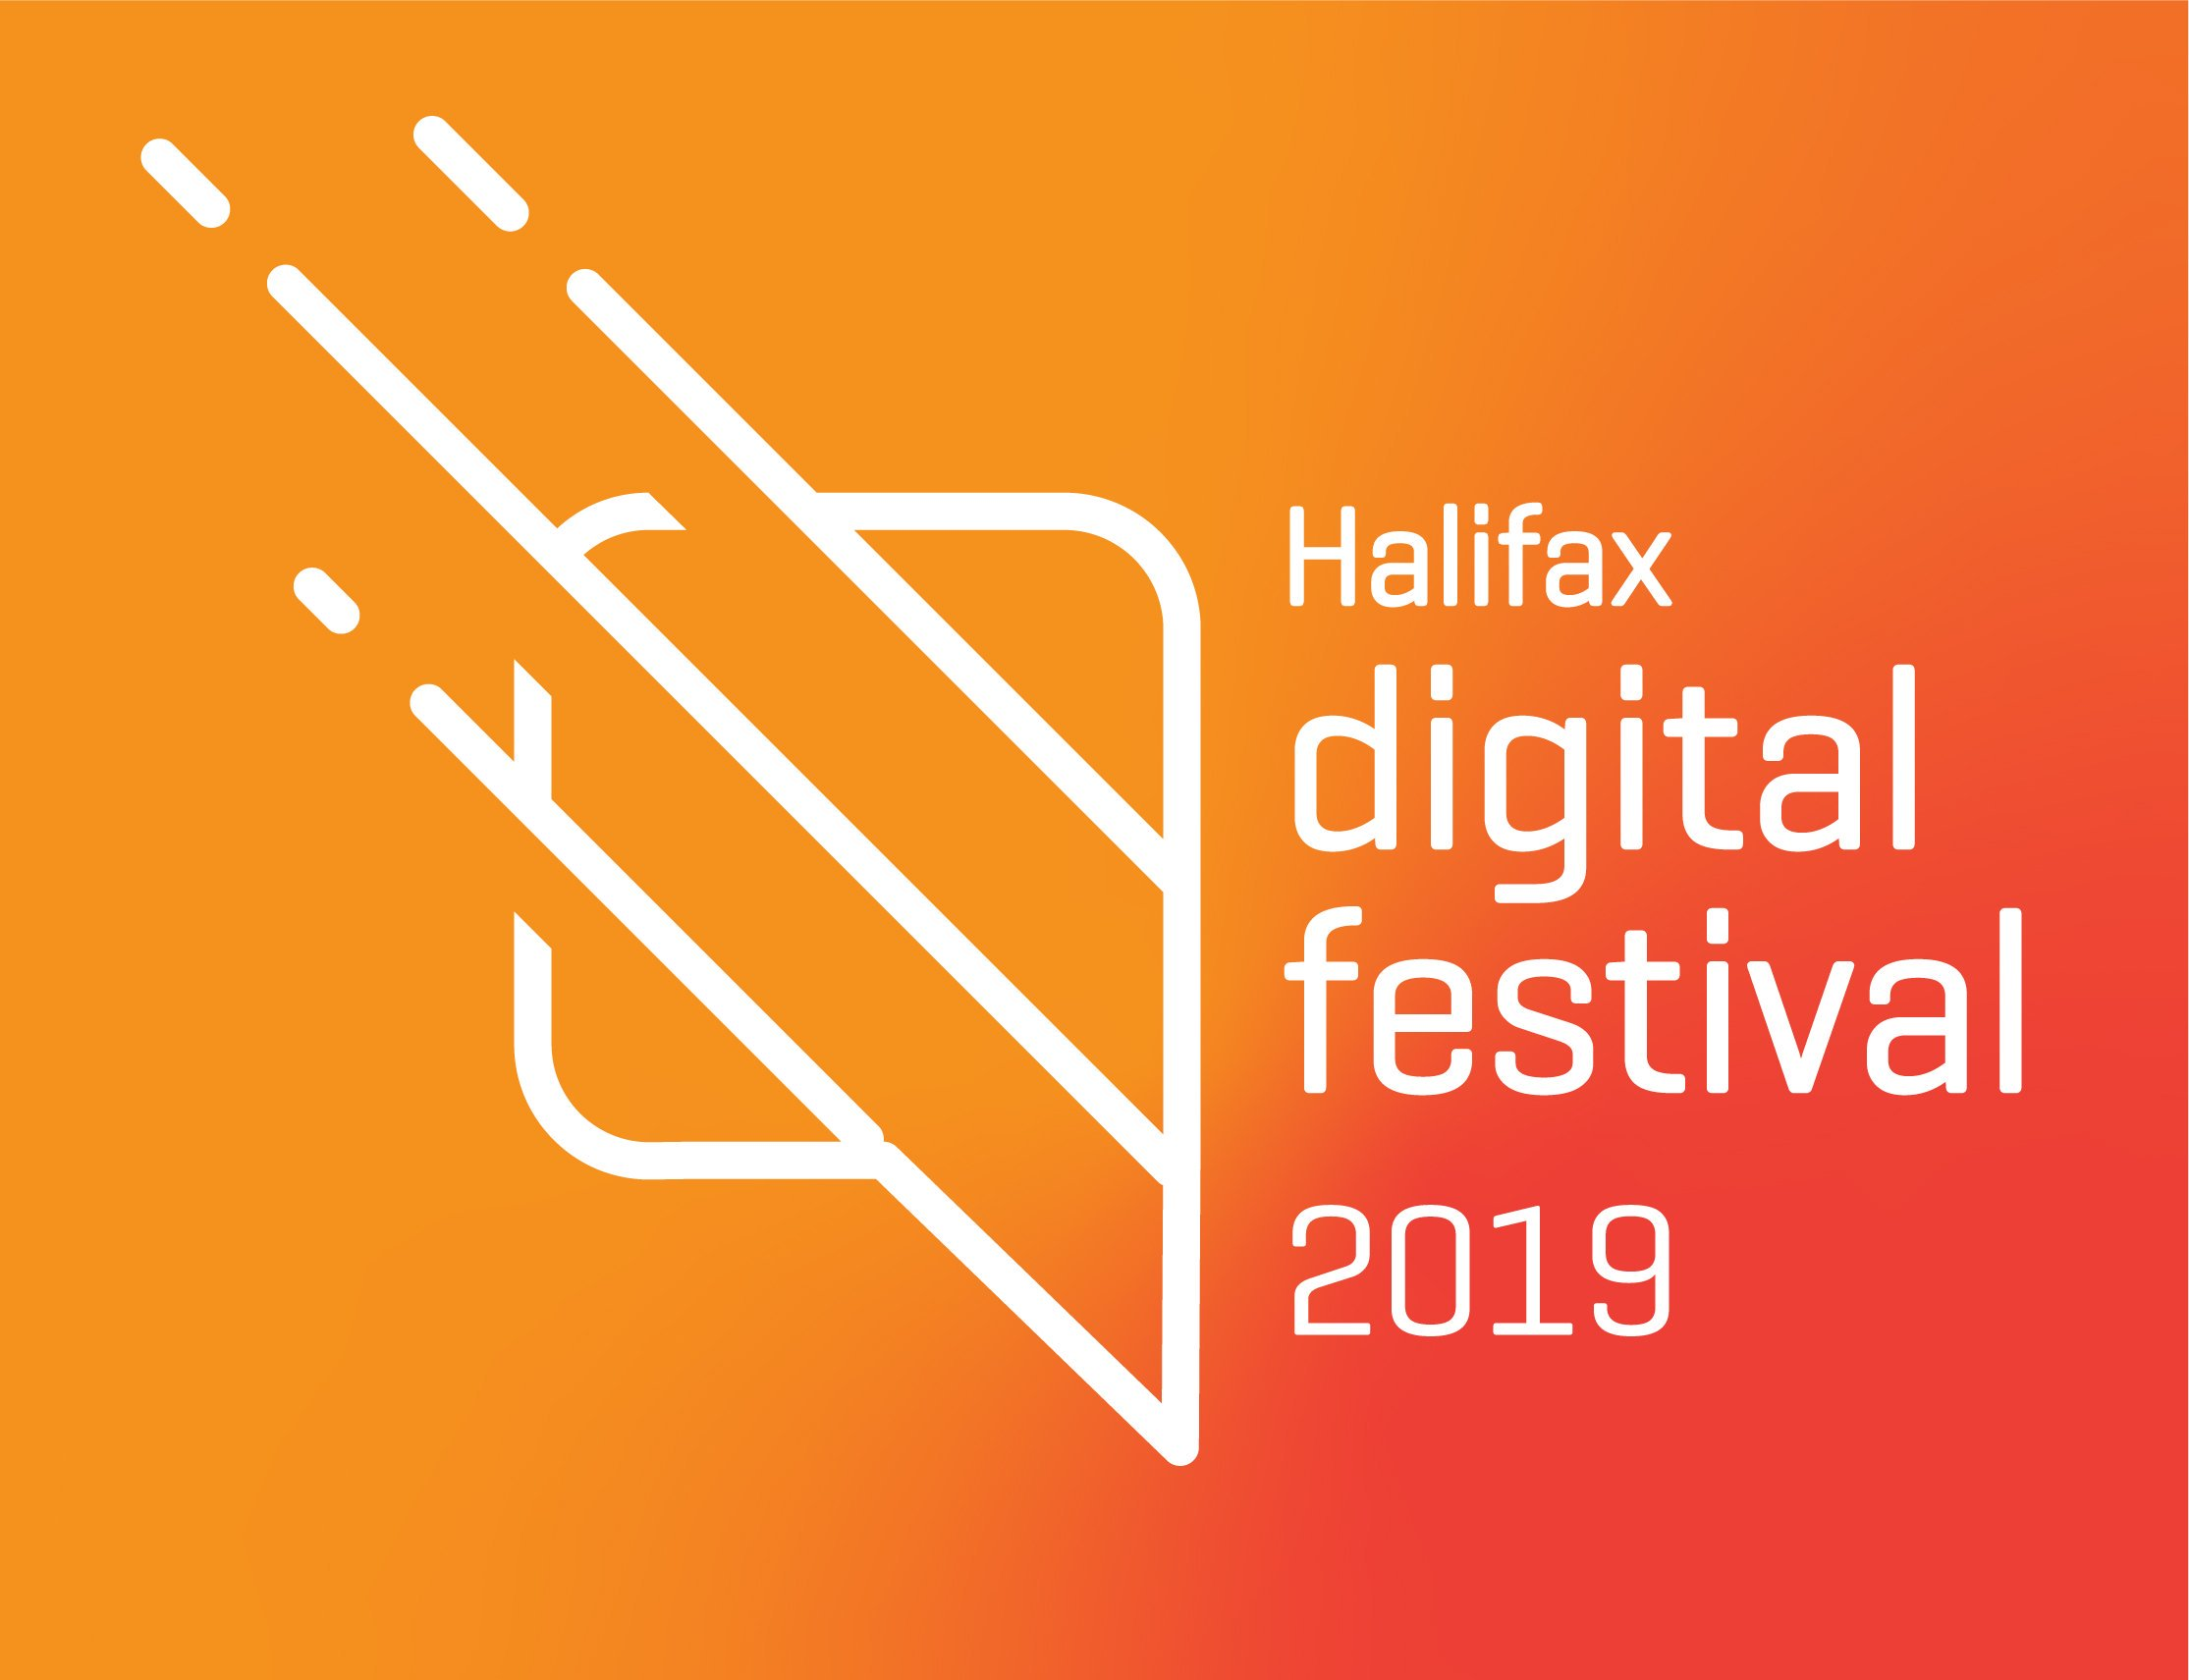 Halifax Digital festival